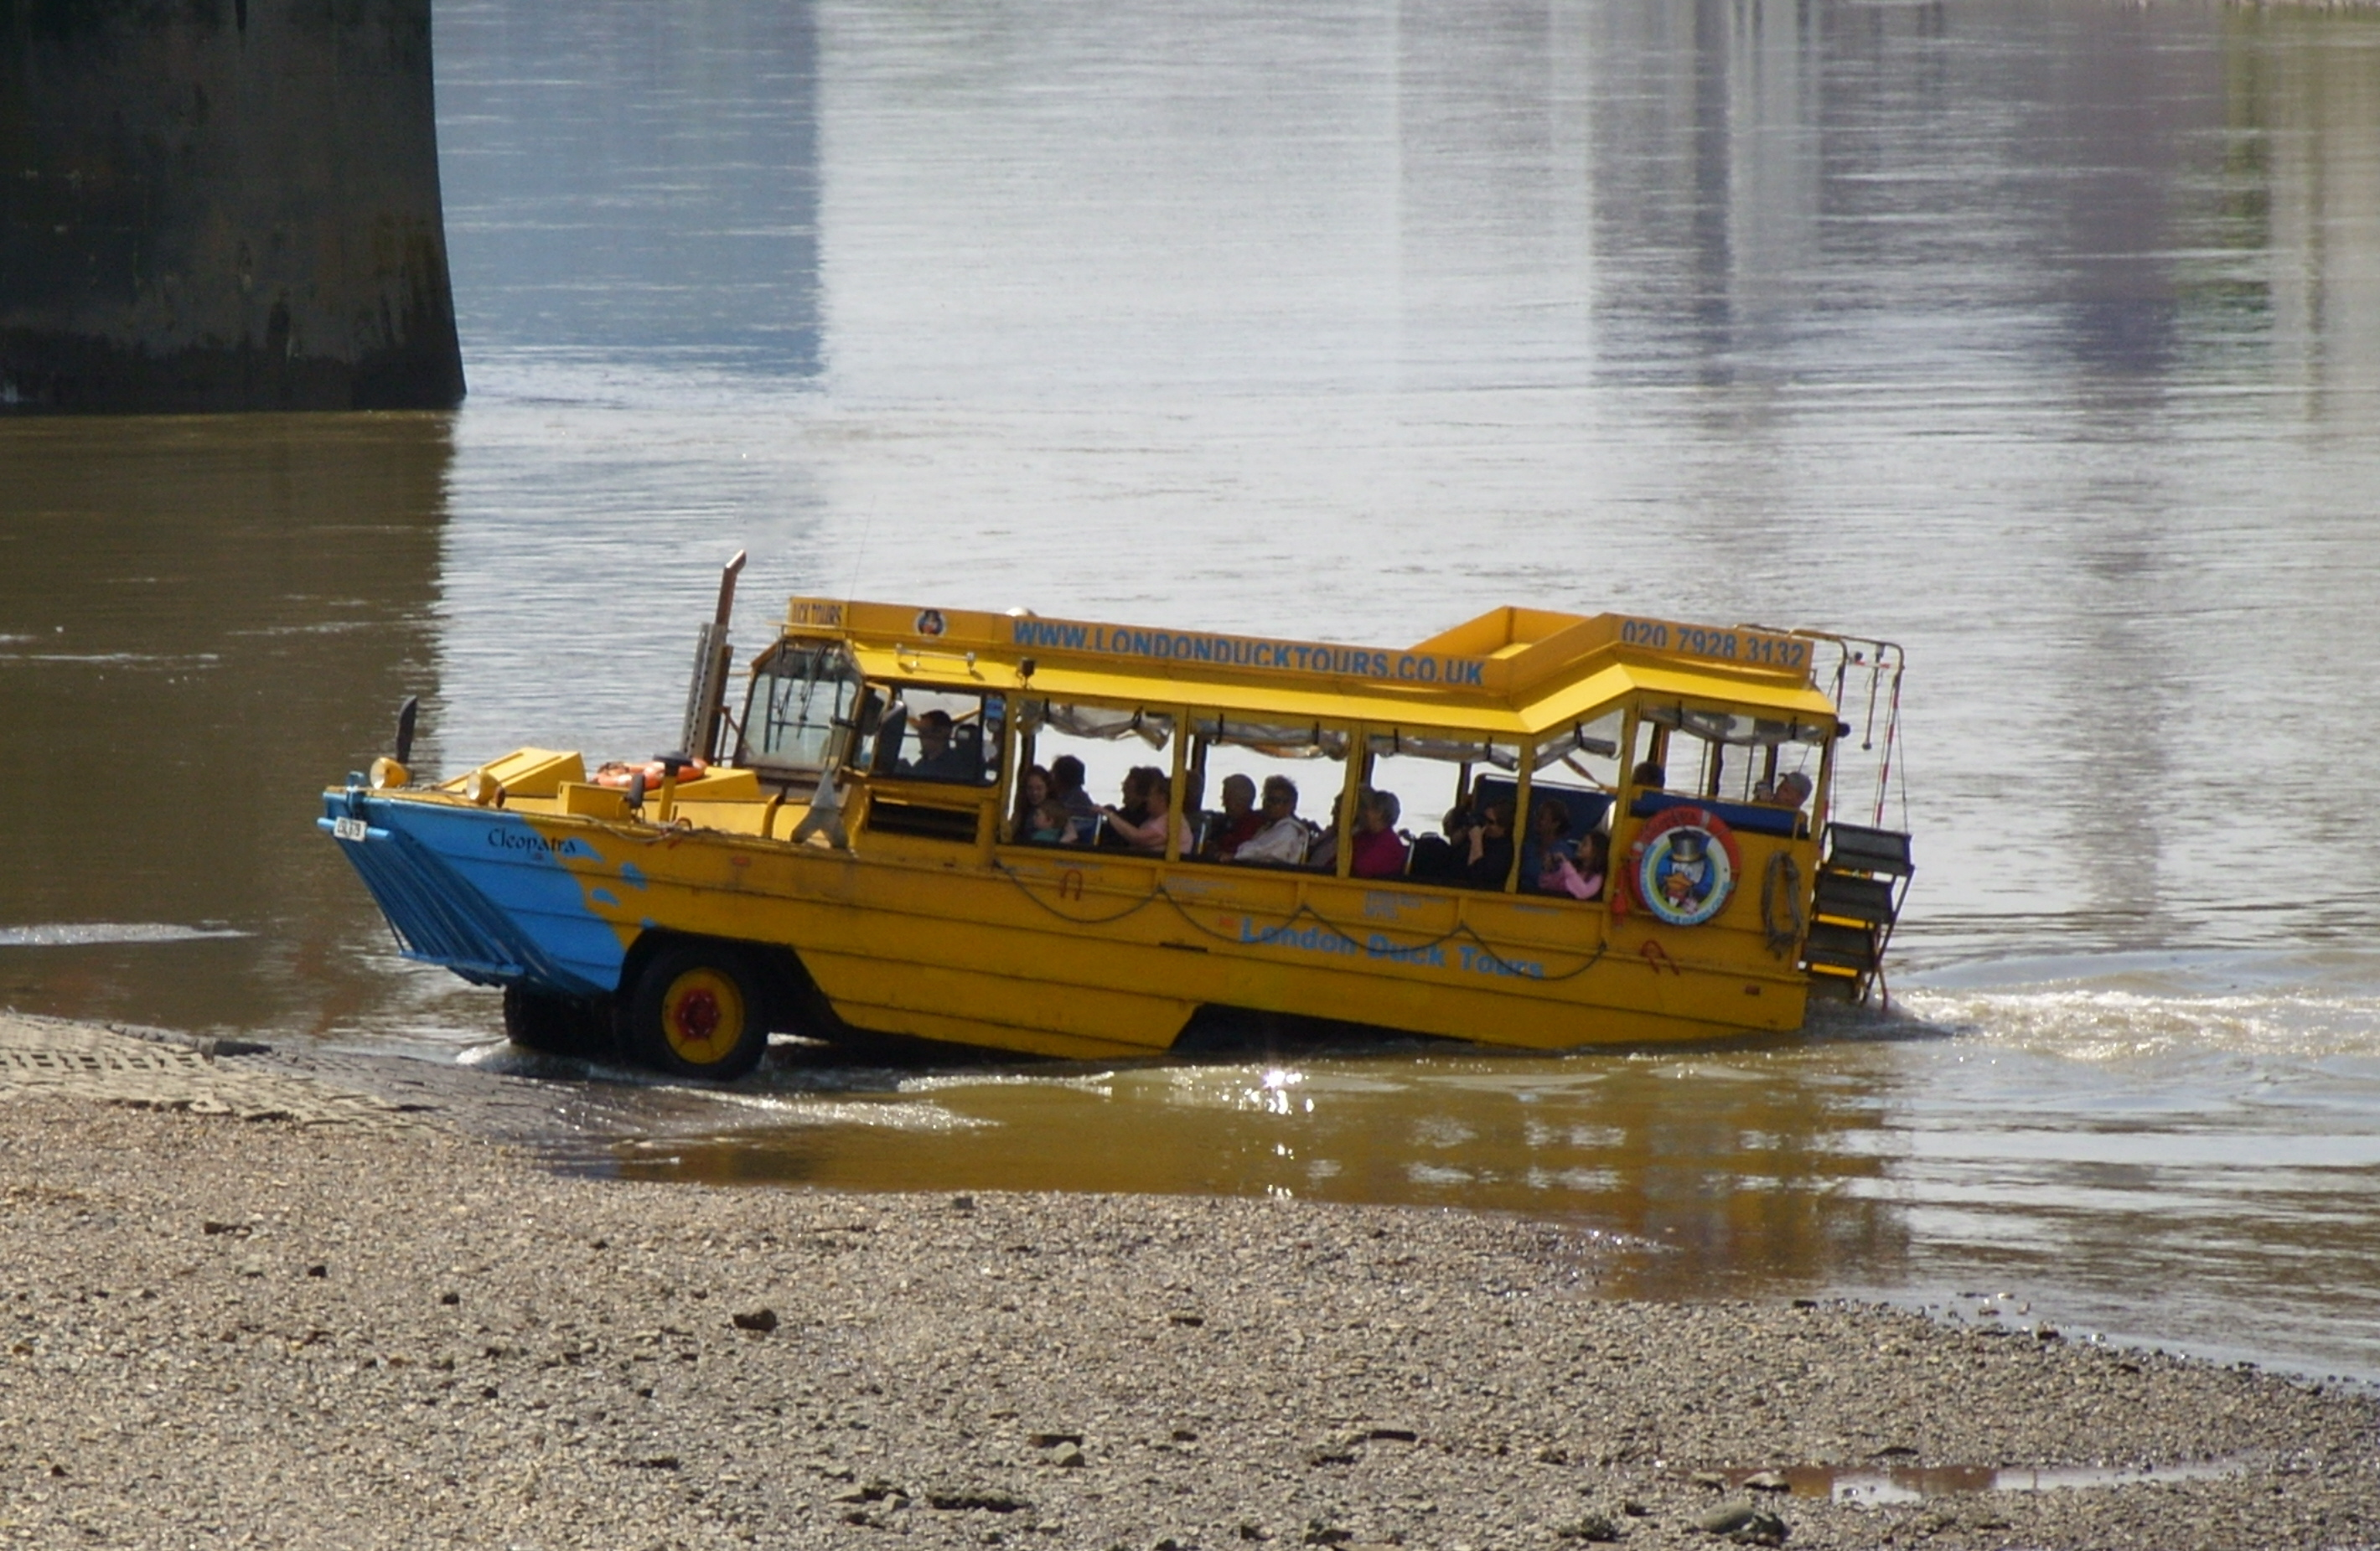 The Missouri Duck Boat Accident Resulted From a Well-Known Design